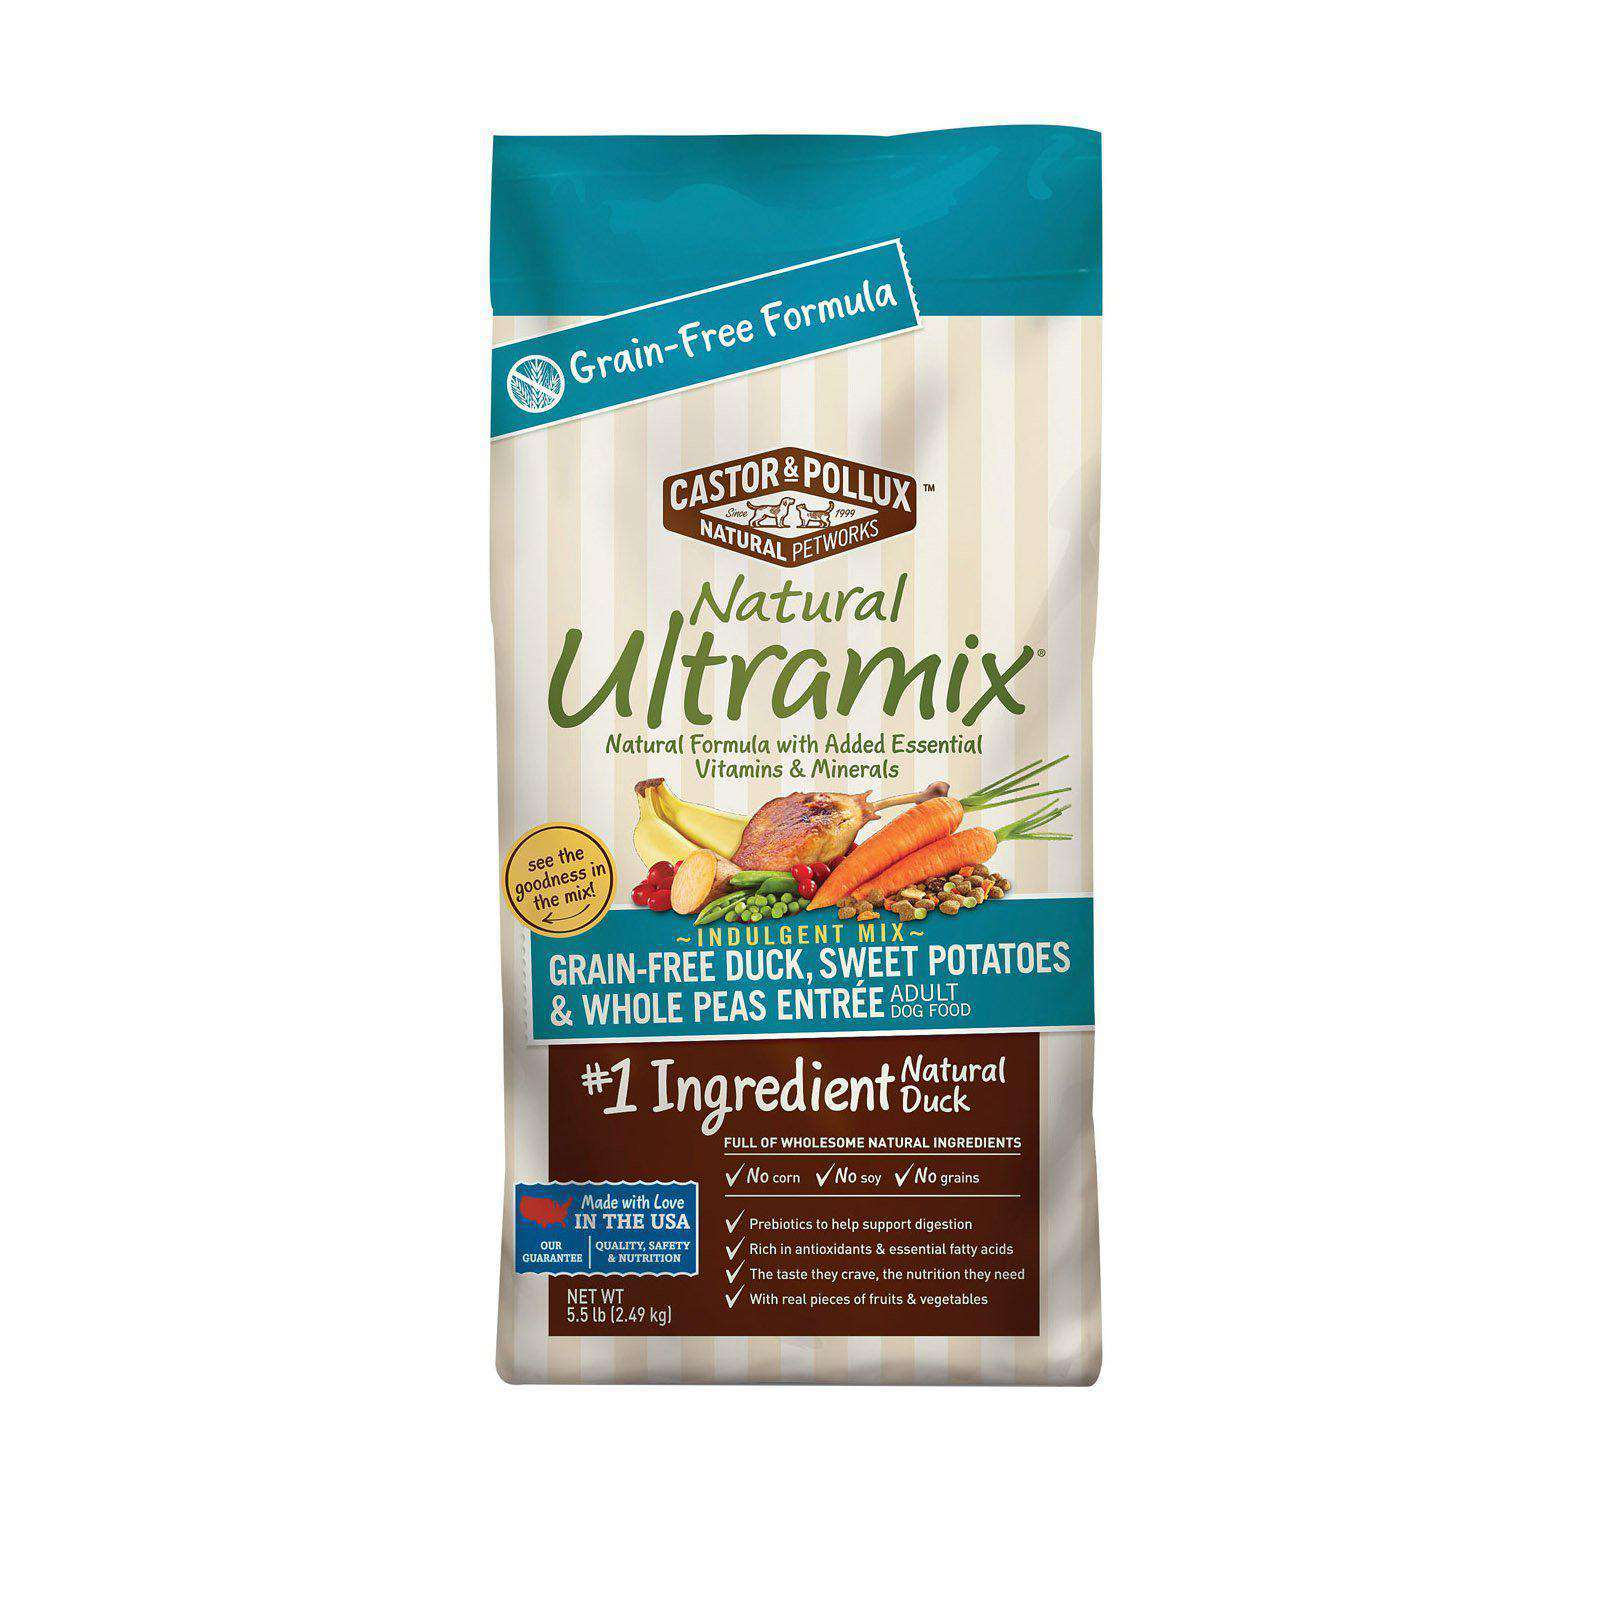 Castor And Pollux Ultra Mix Dog Food - Duck Sweet Potatoes And Peas - Case Of 5 - 5.5 Lb.-Castor & Pollux-DirtyFurClothing